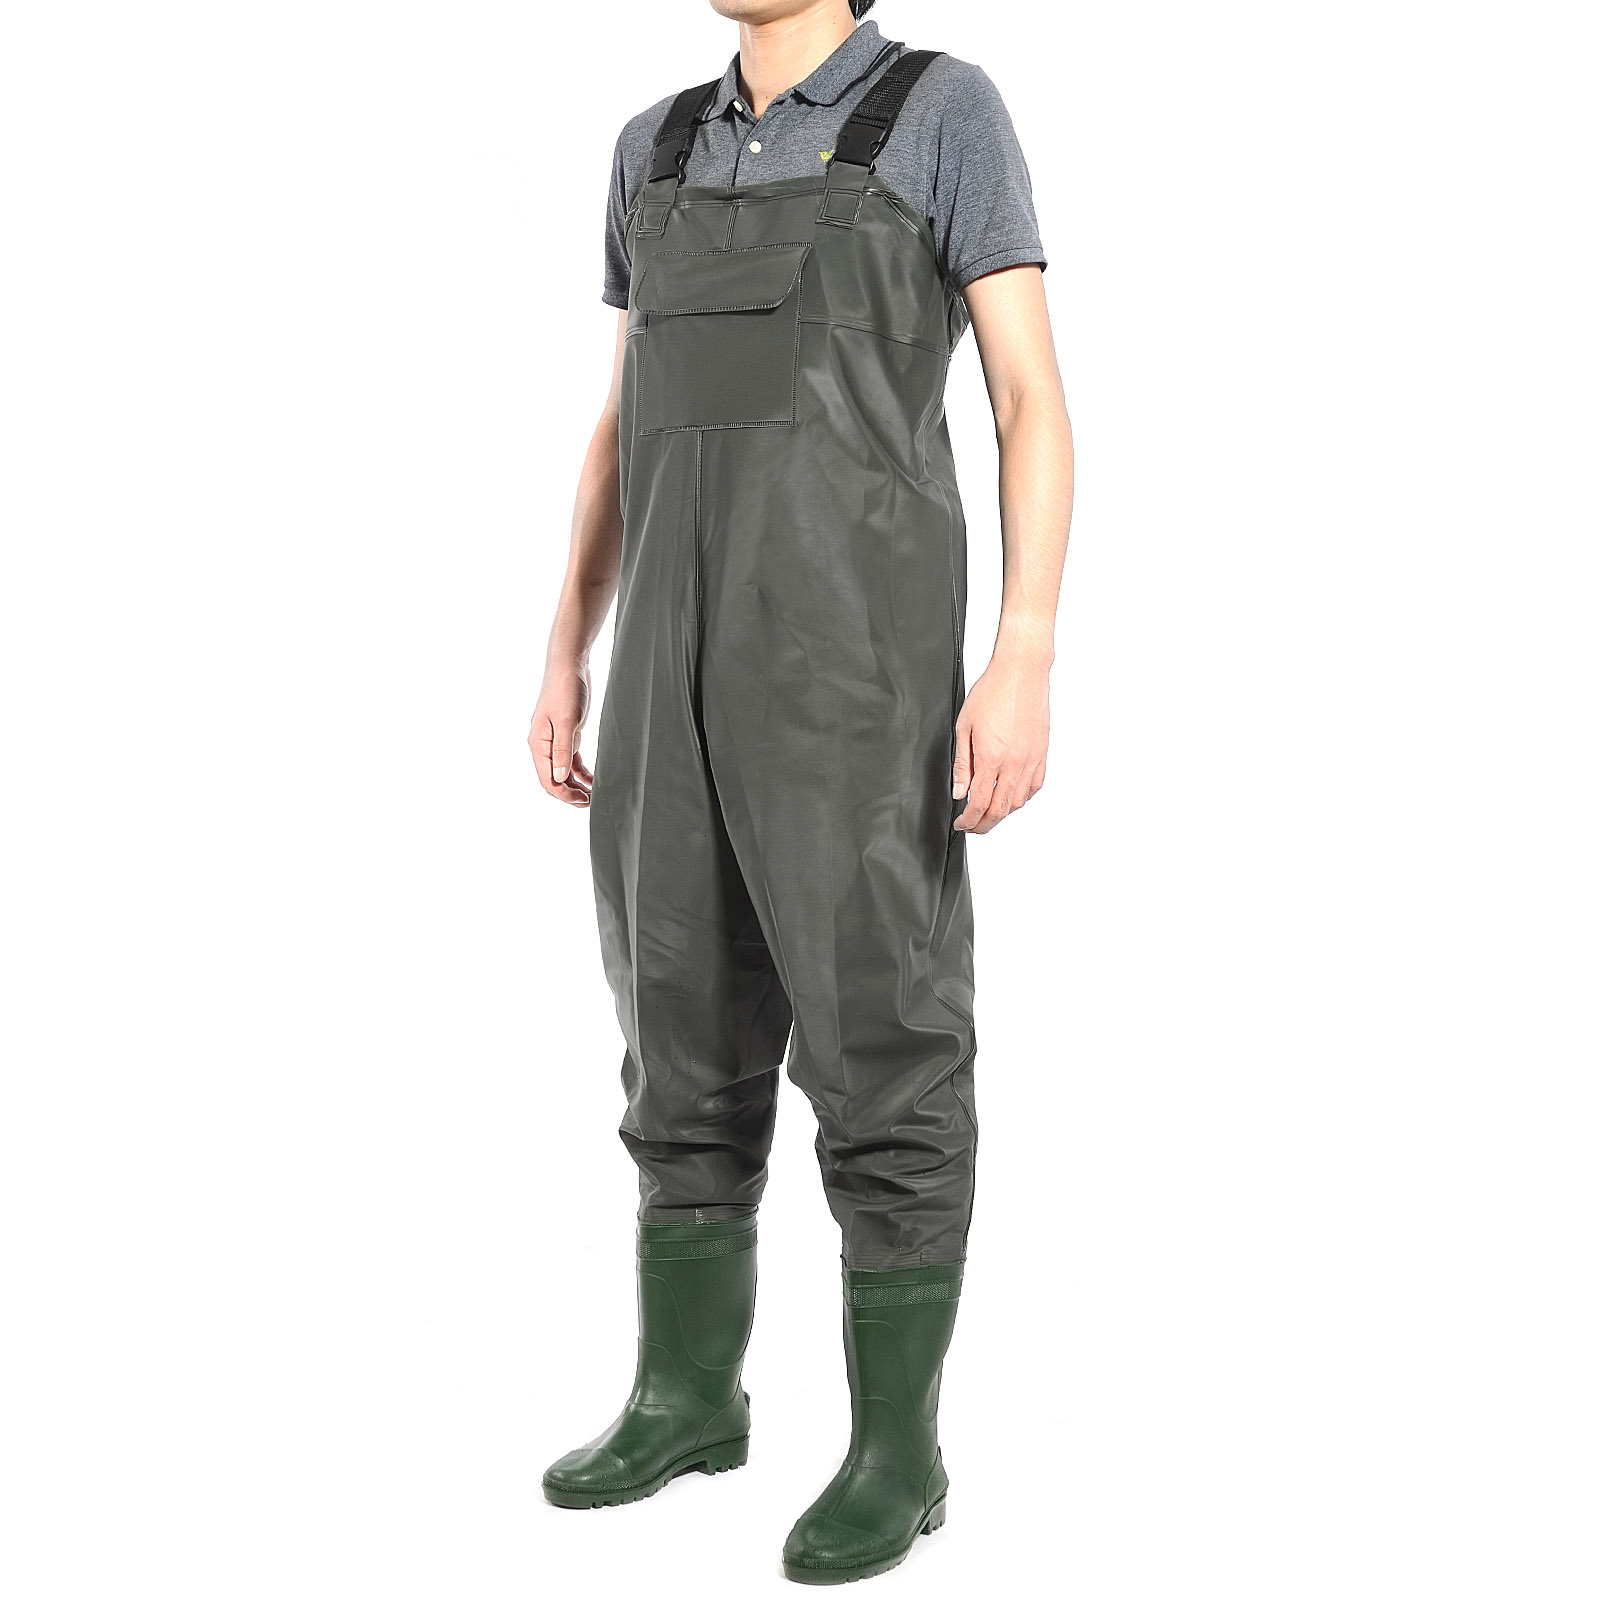 Waterproof overall chest waders fishing hunting with for Chest waders for fishing